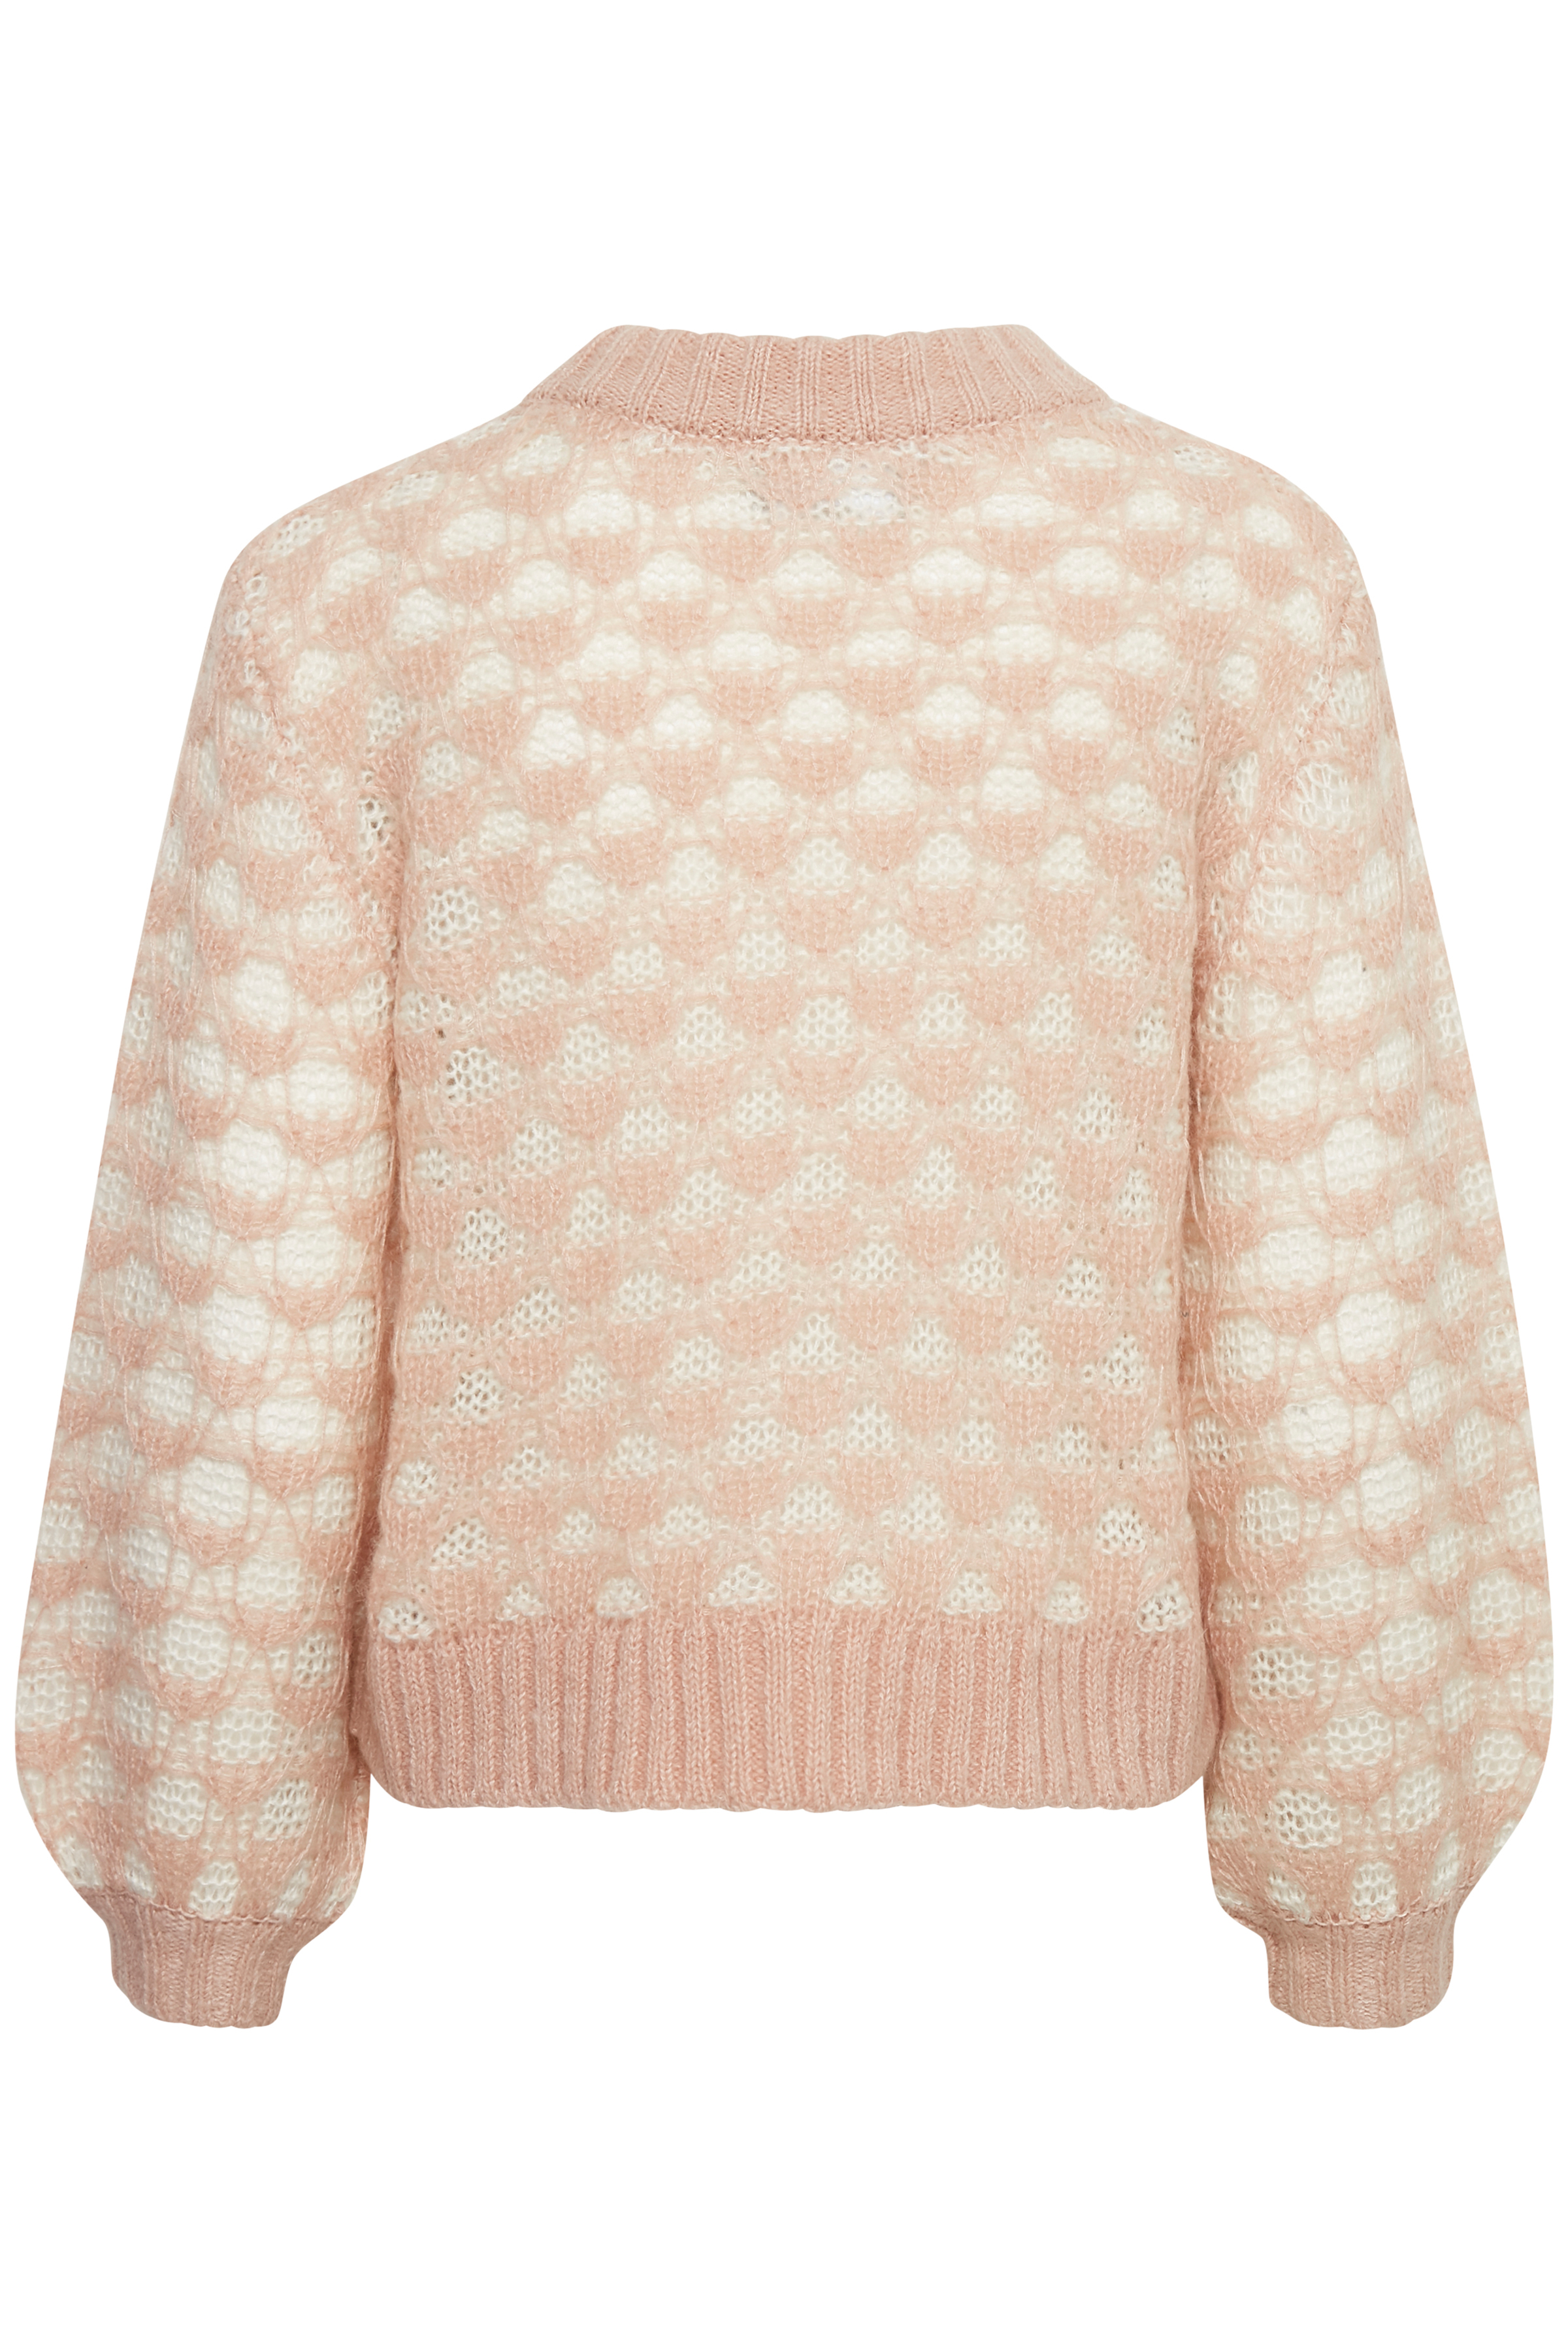 Rose Dust / White Smoke Strikpullover – Køb Rose Dust / White Smoke Strikpullover fra str. XS-XL her